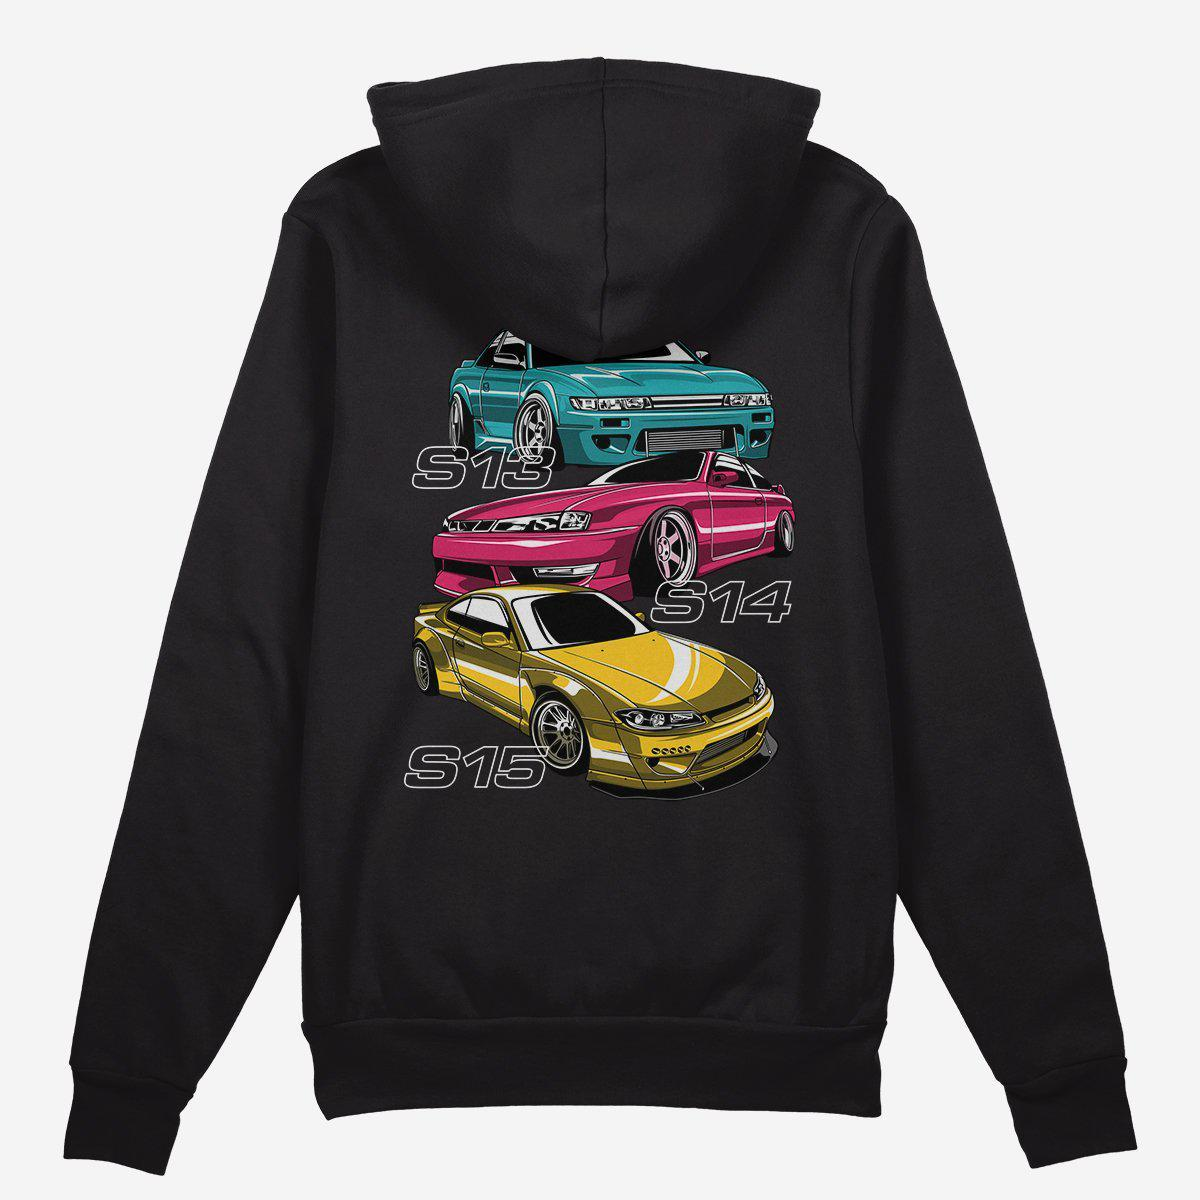 S Chassis Generation Car Hoodie. Nissan Silvia S13, S14, and S15. Black.